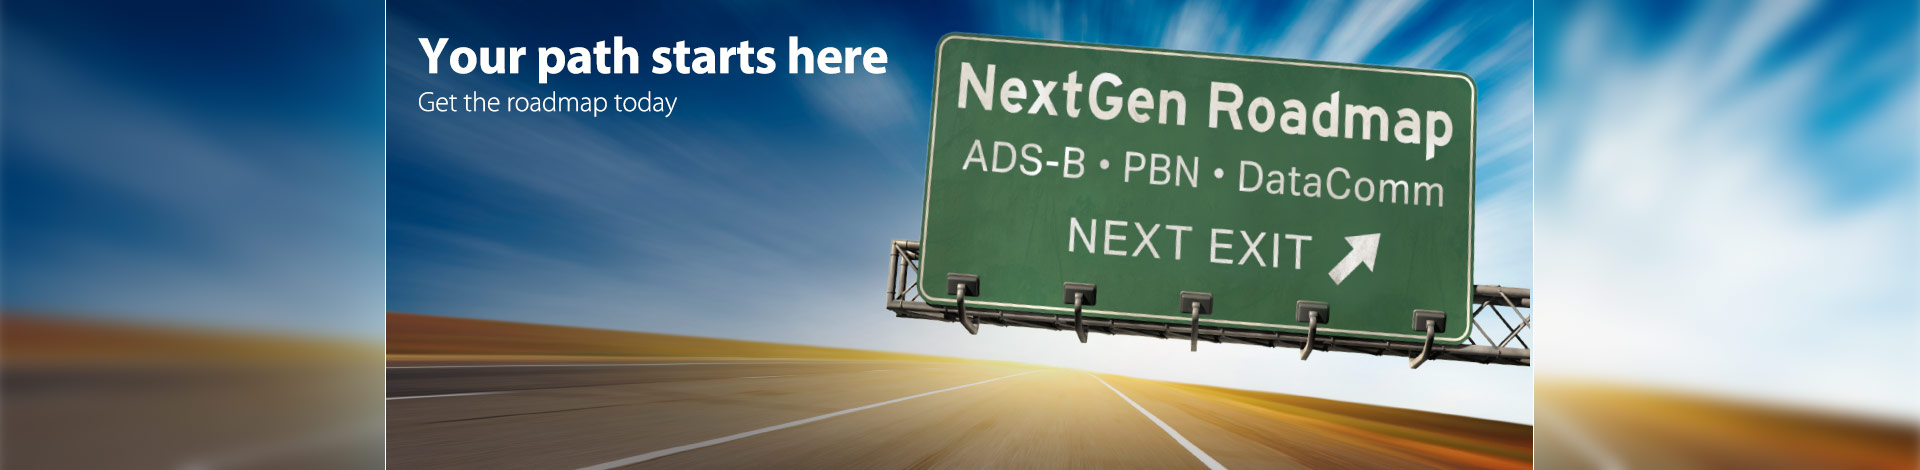 NextGen Roadmap